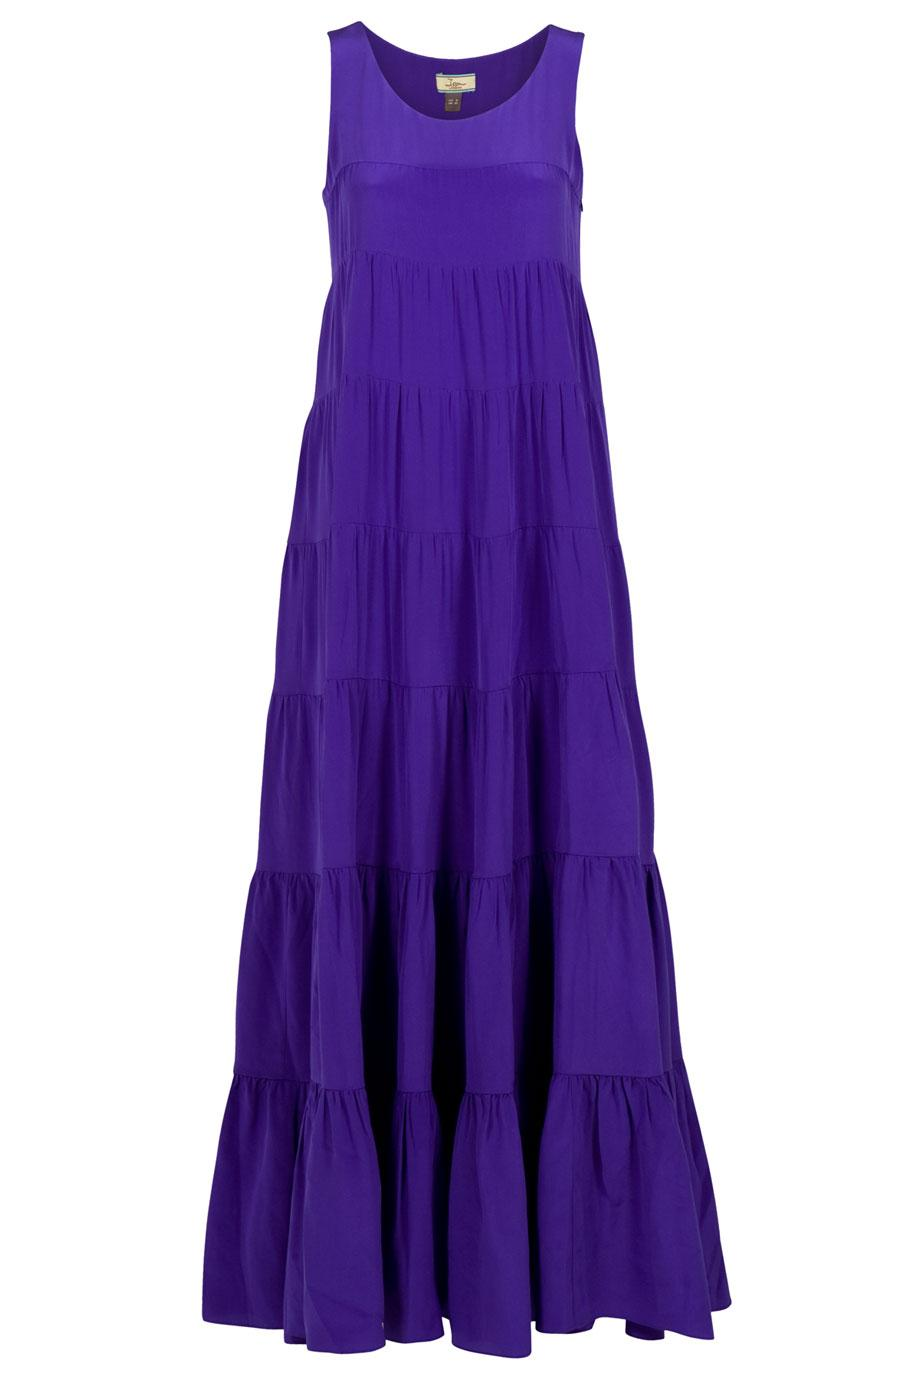 Purple dresses for wedding guests, parties, and other life events. Cute purple dresses in every color from lavender, eggplant, to plum! Purple is a great color to wear to weddings, so pick from over 70 dresses for purple wedding guest dresses!